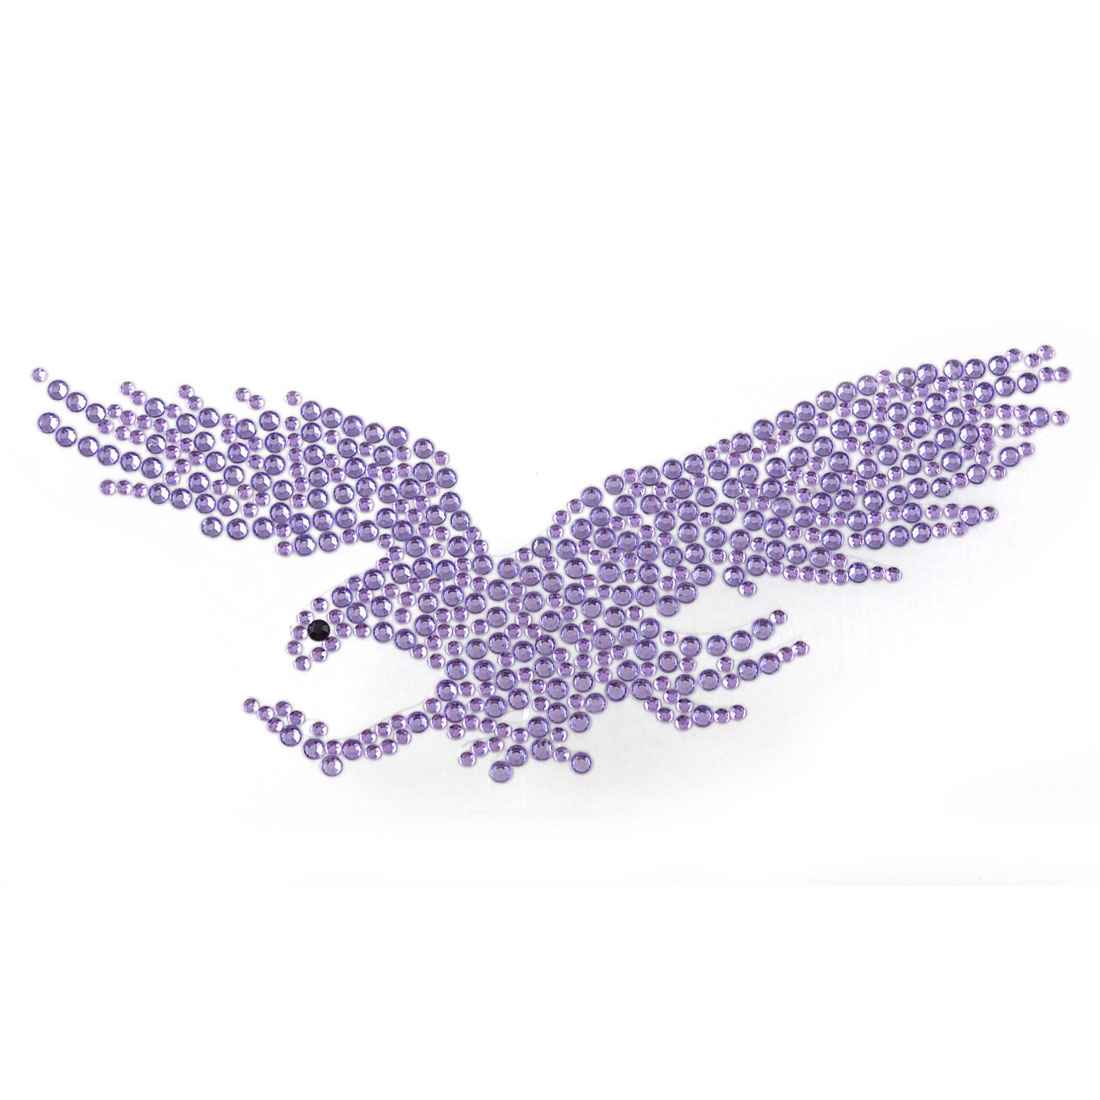 Plastic Rhinestones Eagle Decal Stickers Light Purple for Car Automobile Vehicles